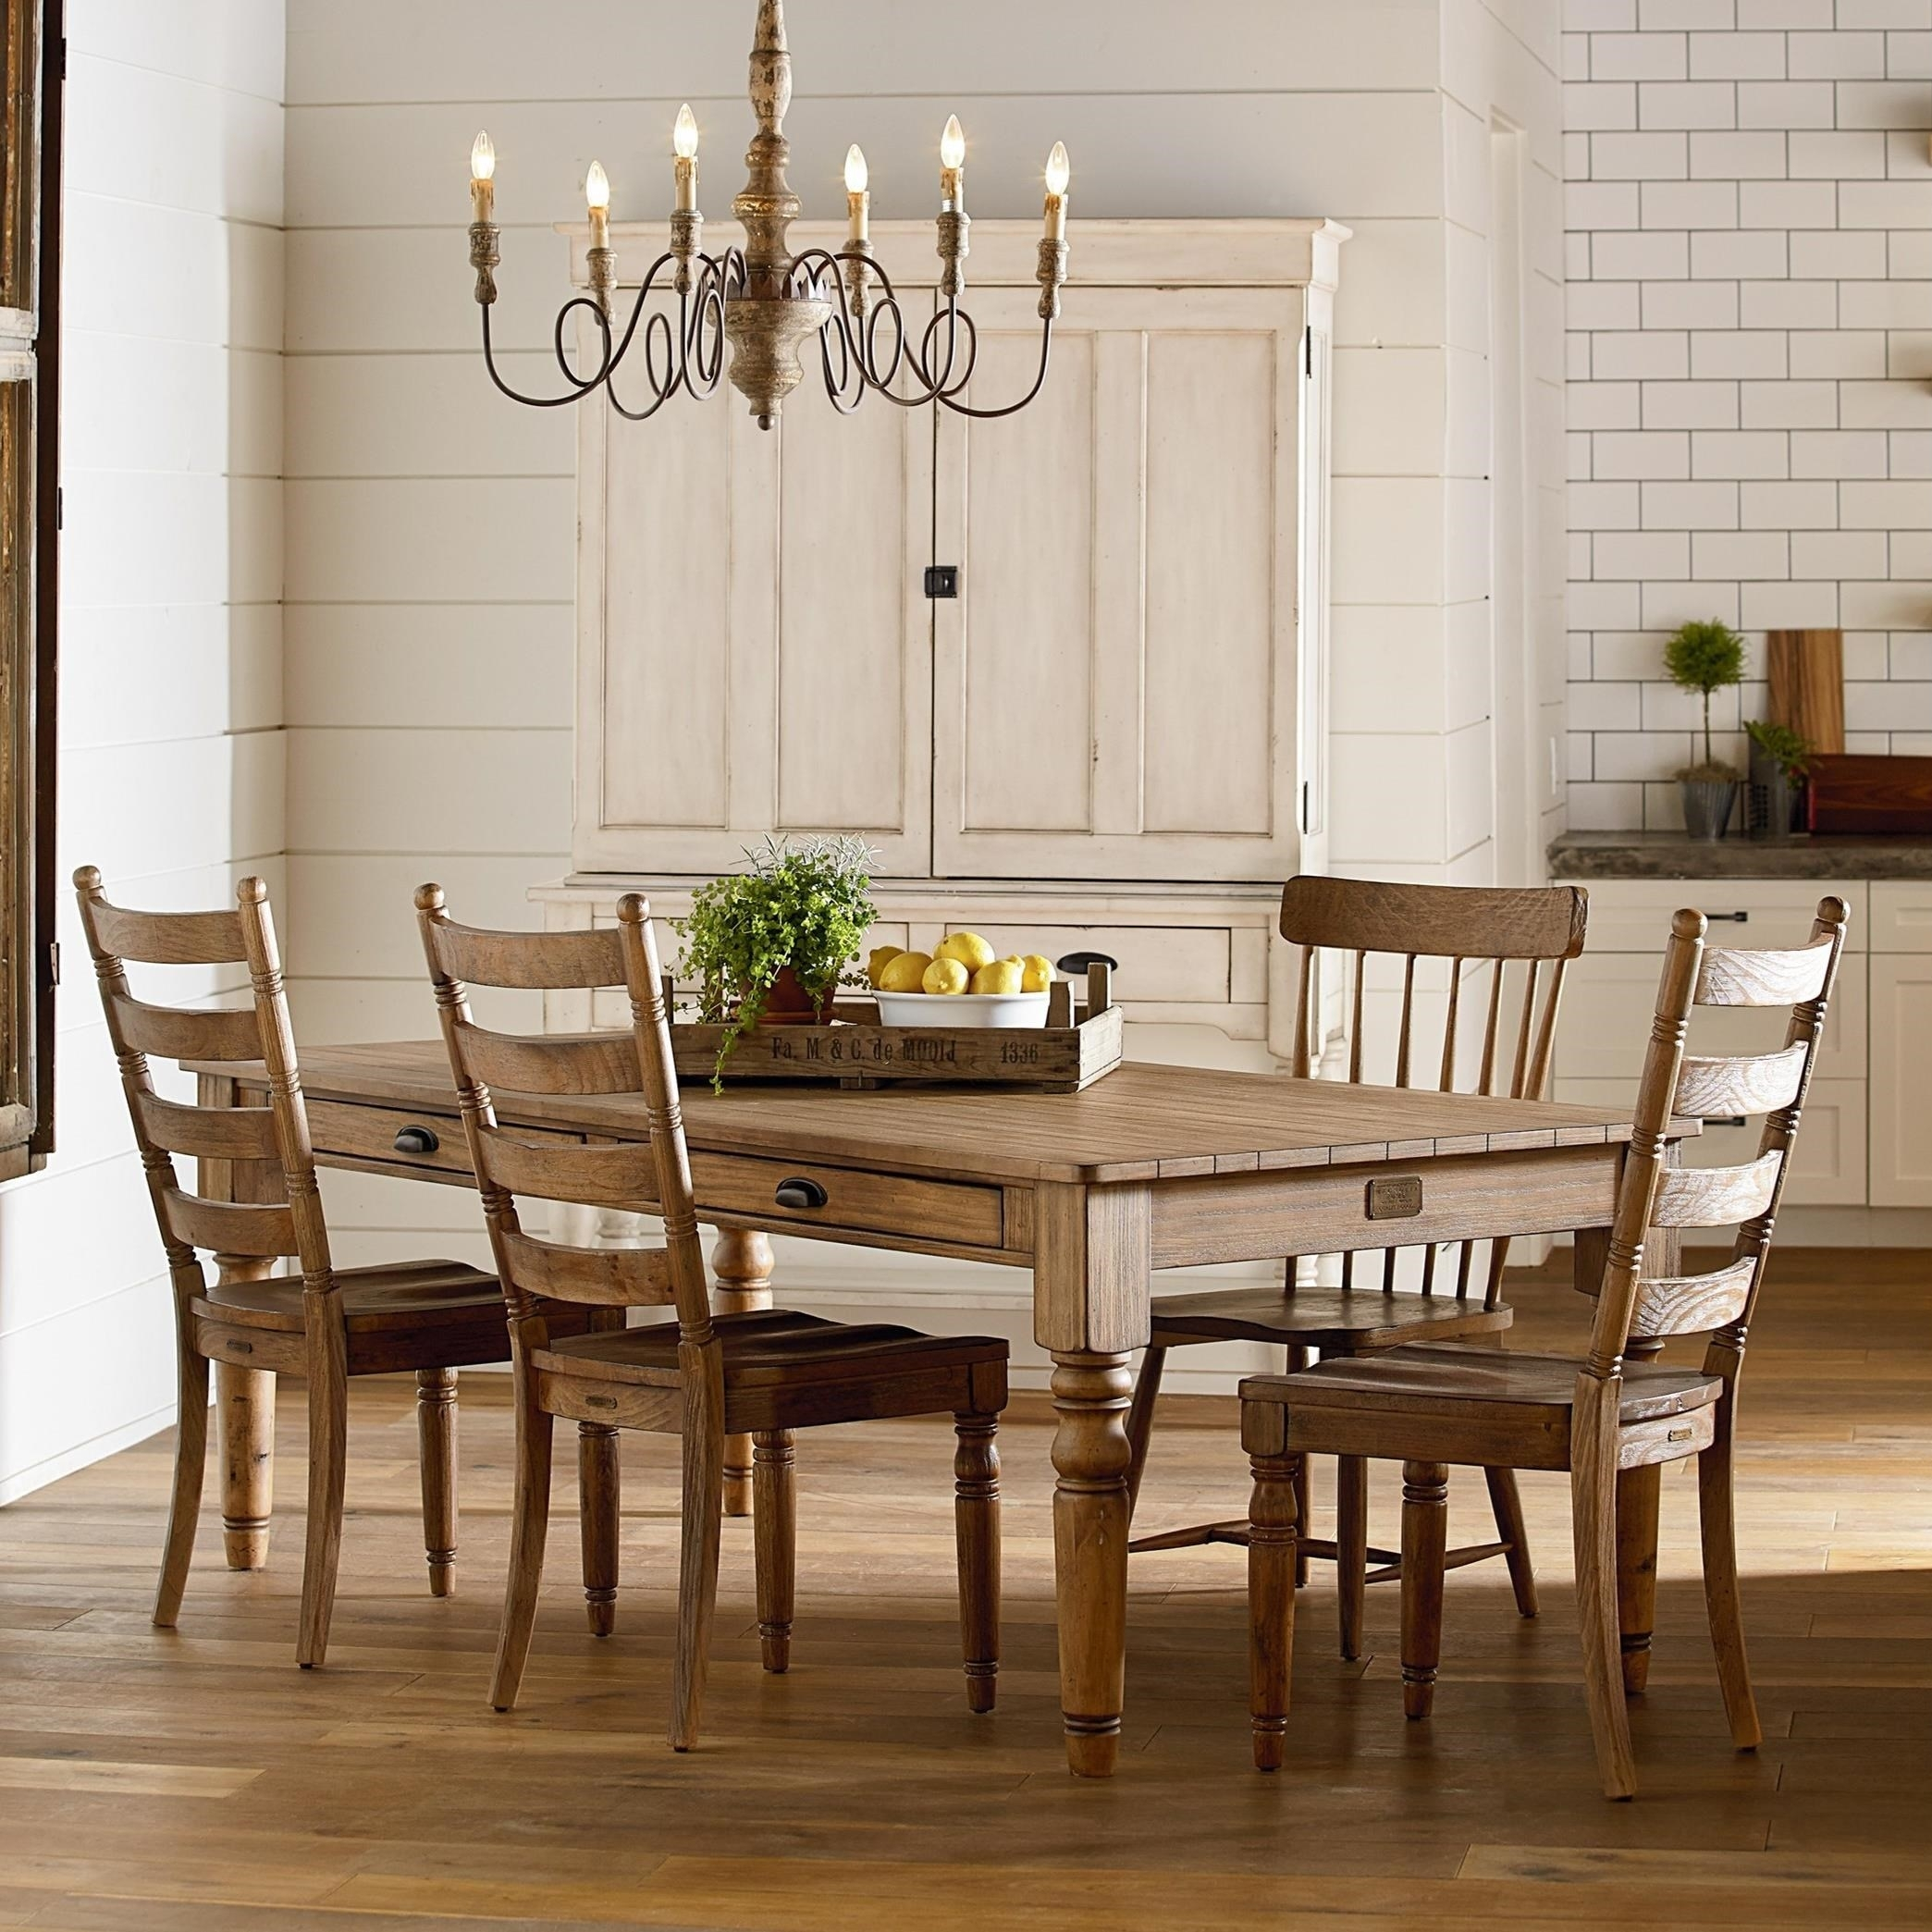 Magnolia Table — Latest News, Images And Photos — Crypticimages With Regard To Best And Newest Magnolia Home Bench Keeping 96 Inch Dining Tables (Image 11 of 20)